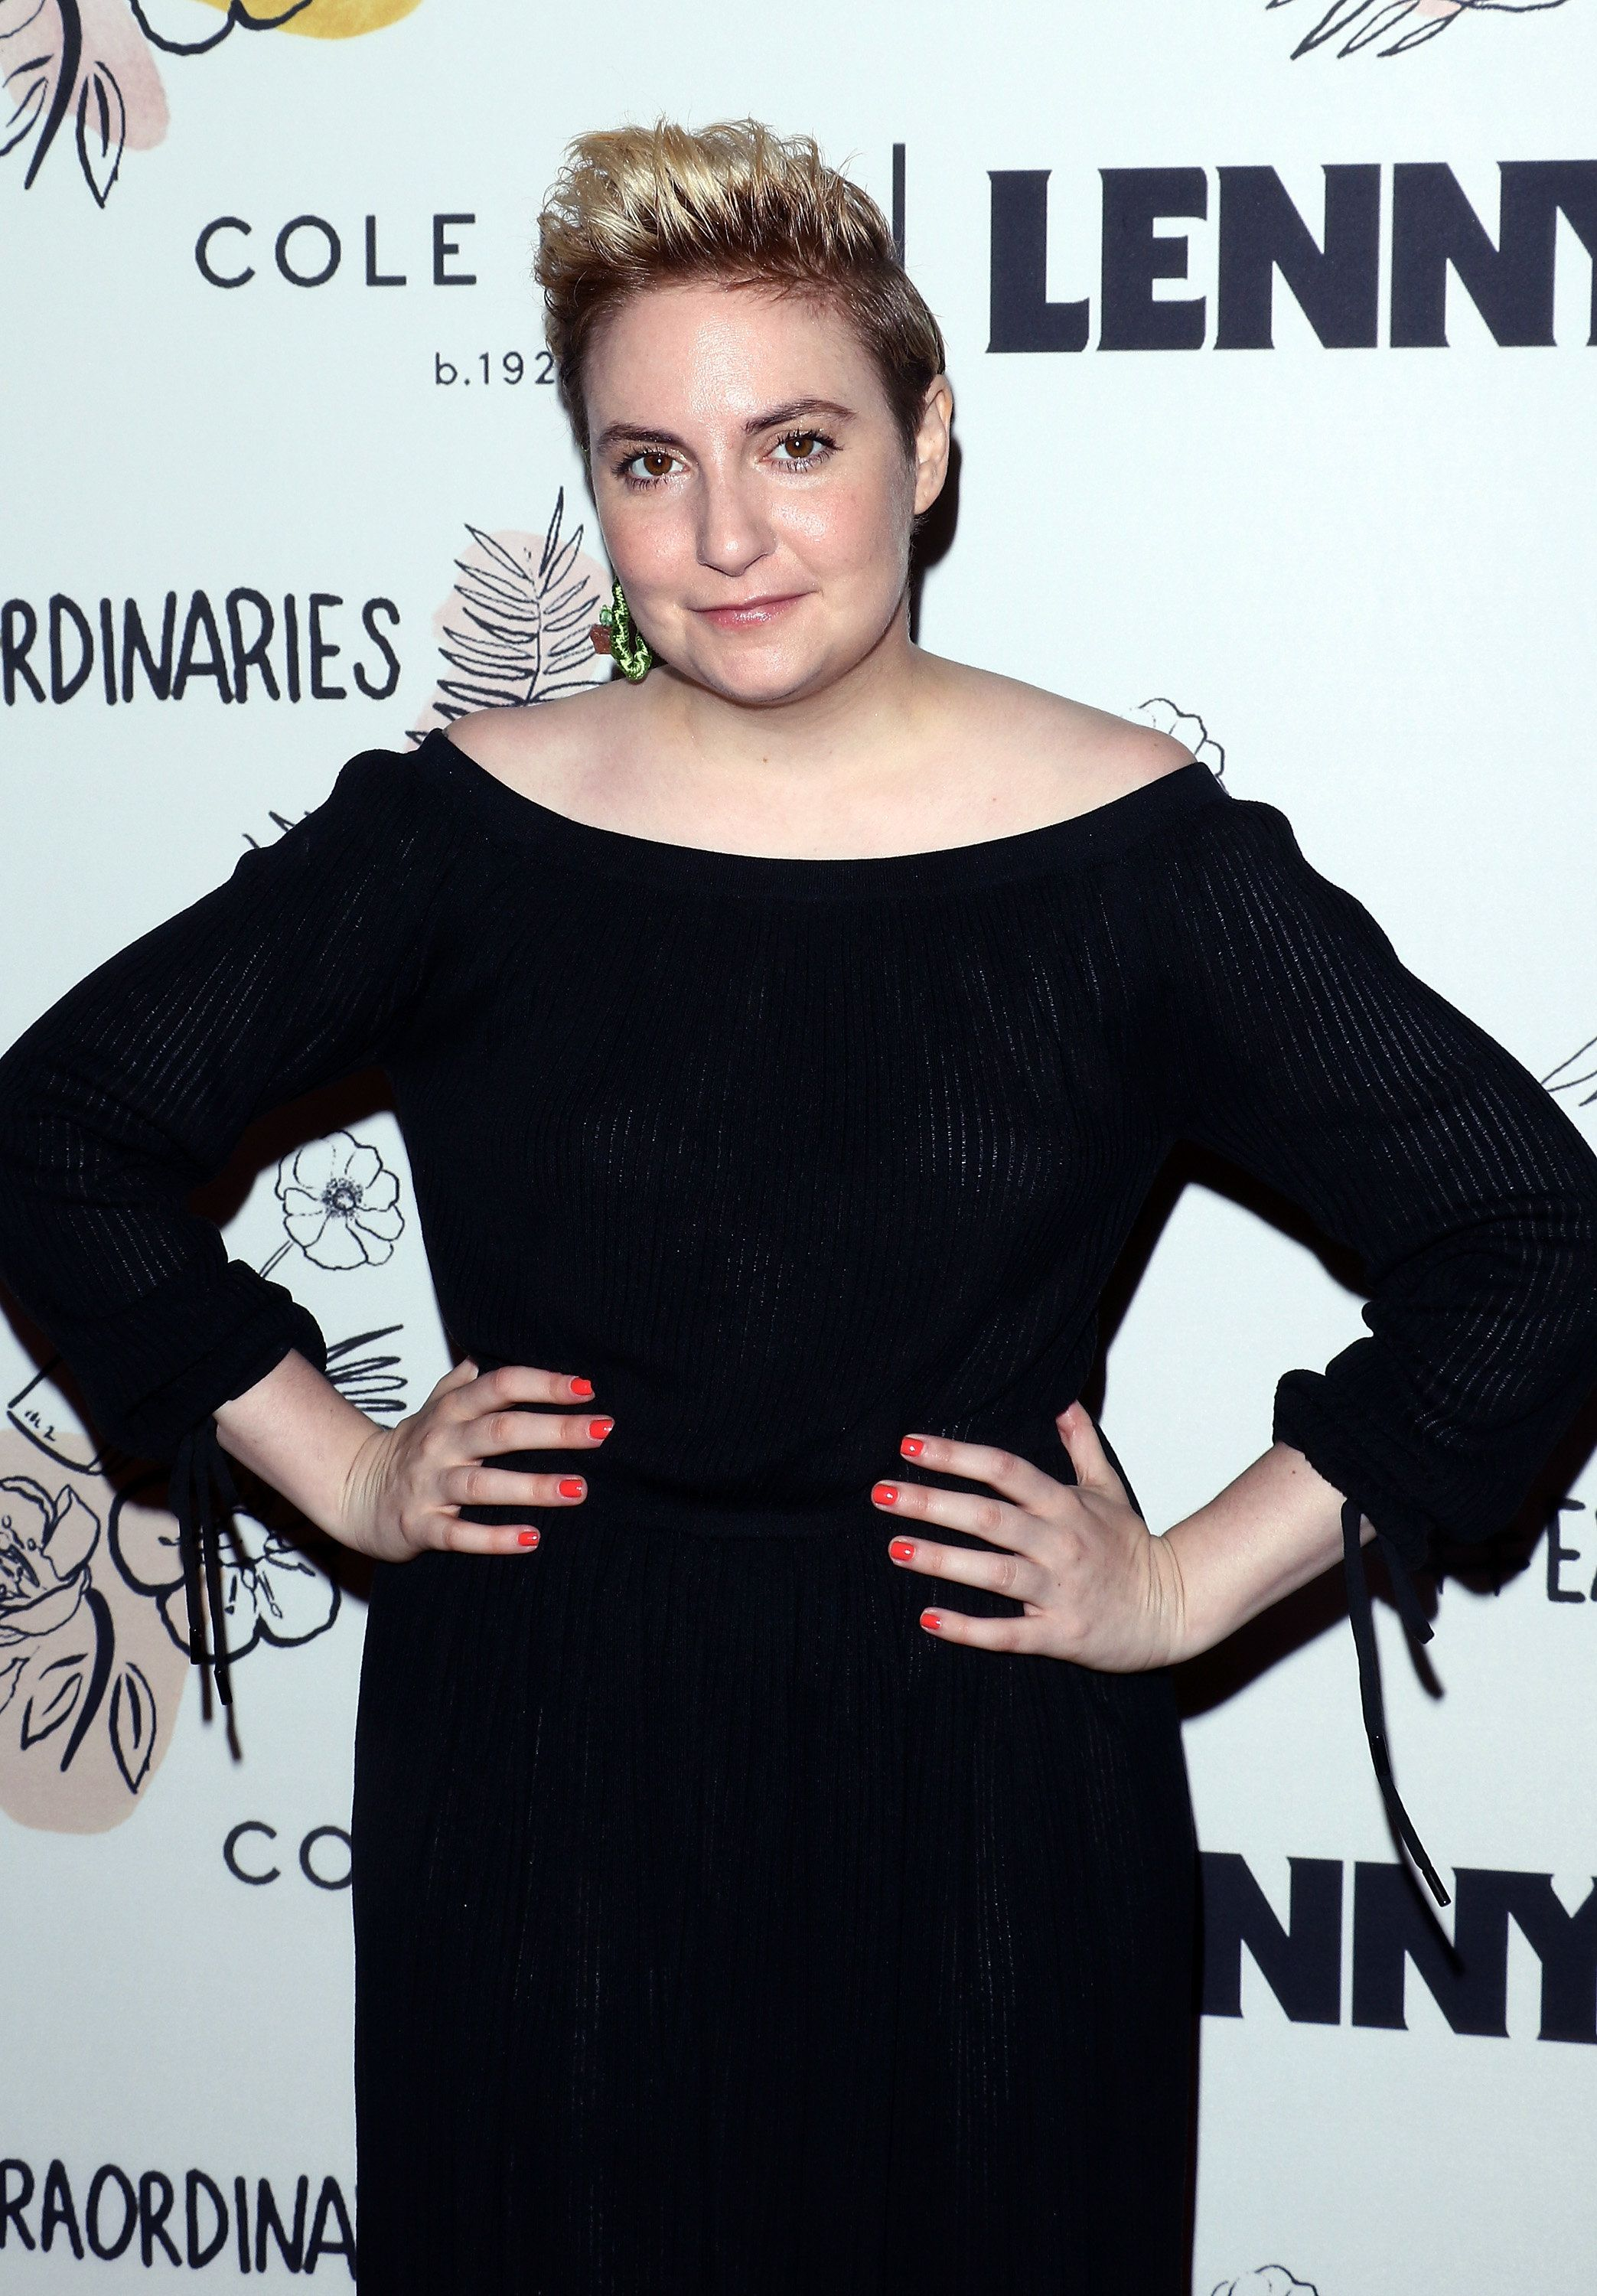 NEW YORK, NY - SEPTEMBER 15:  Actress Lena Dunham attends The 2nd Anniversary Party for Lenny, in partnership with Cole Haan at The Jane Hotel on September 15, 2017 in New York City.  (Photo by Jim Spellman/WireImage)